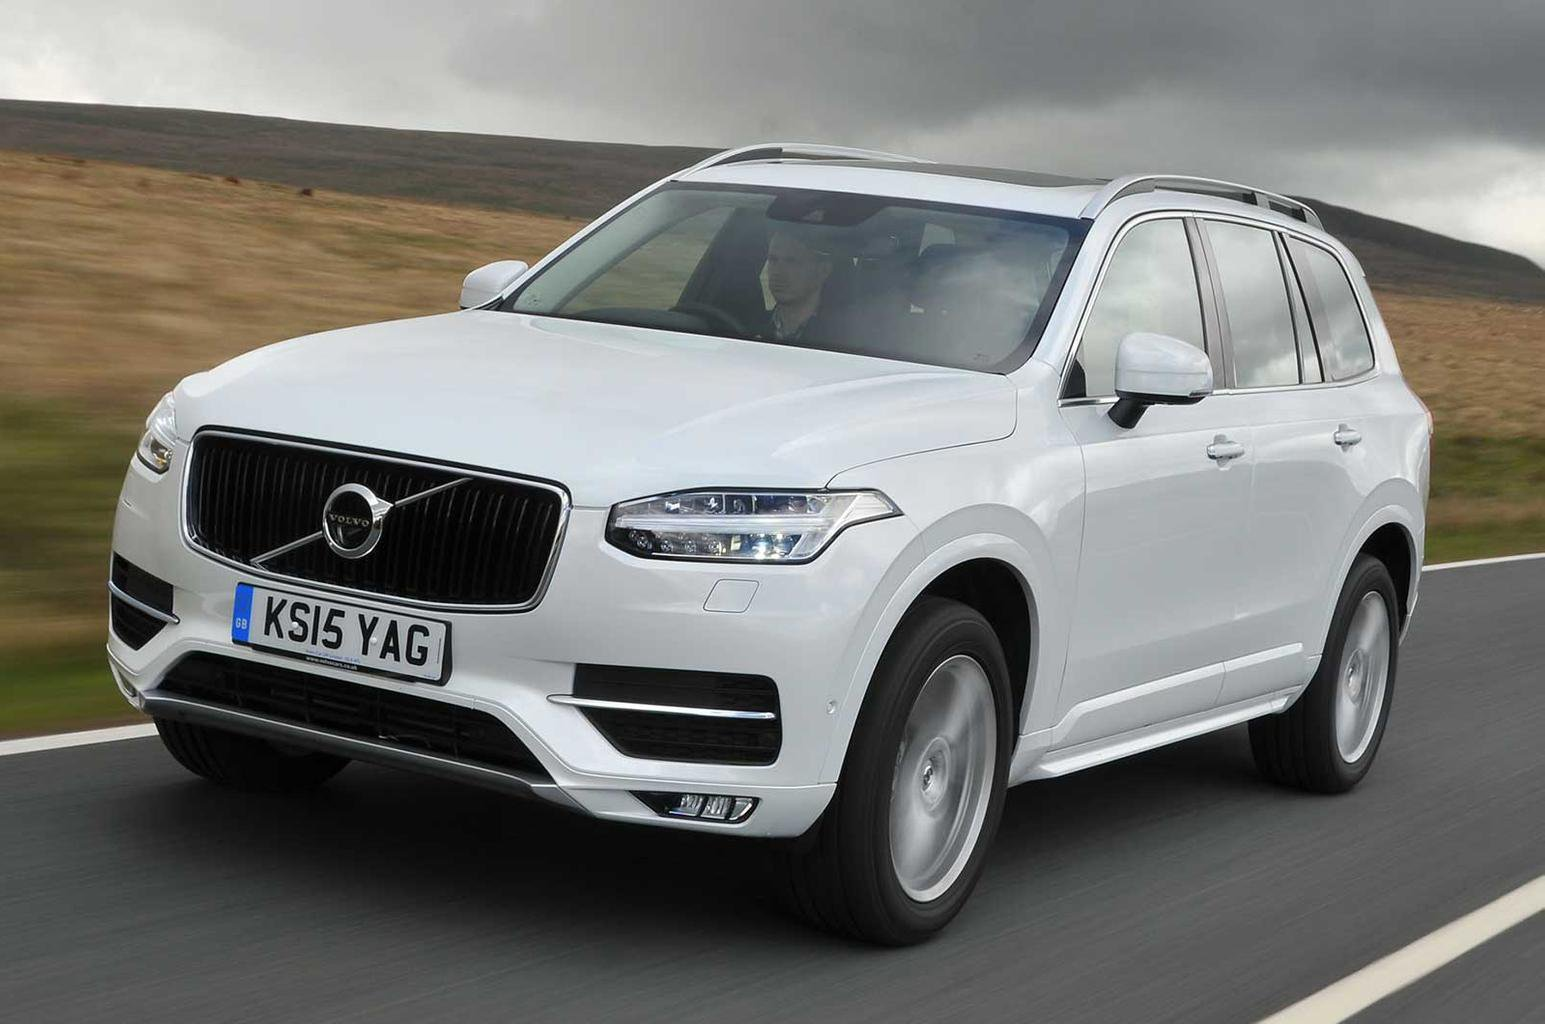 New car deal of the day: Volvo XC90